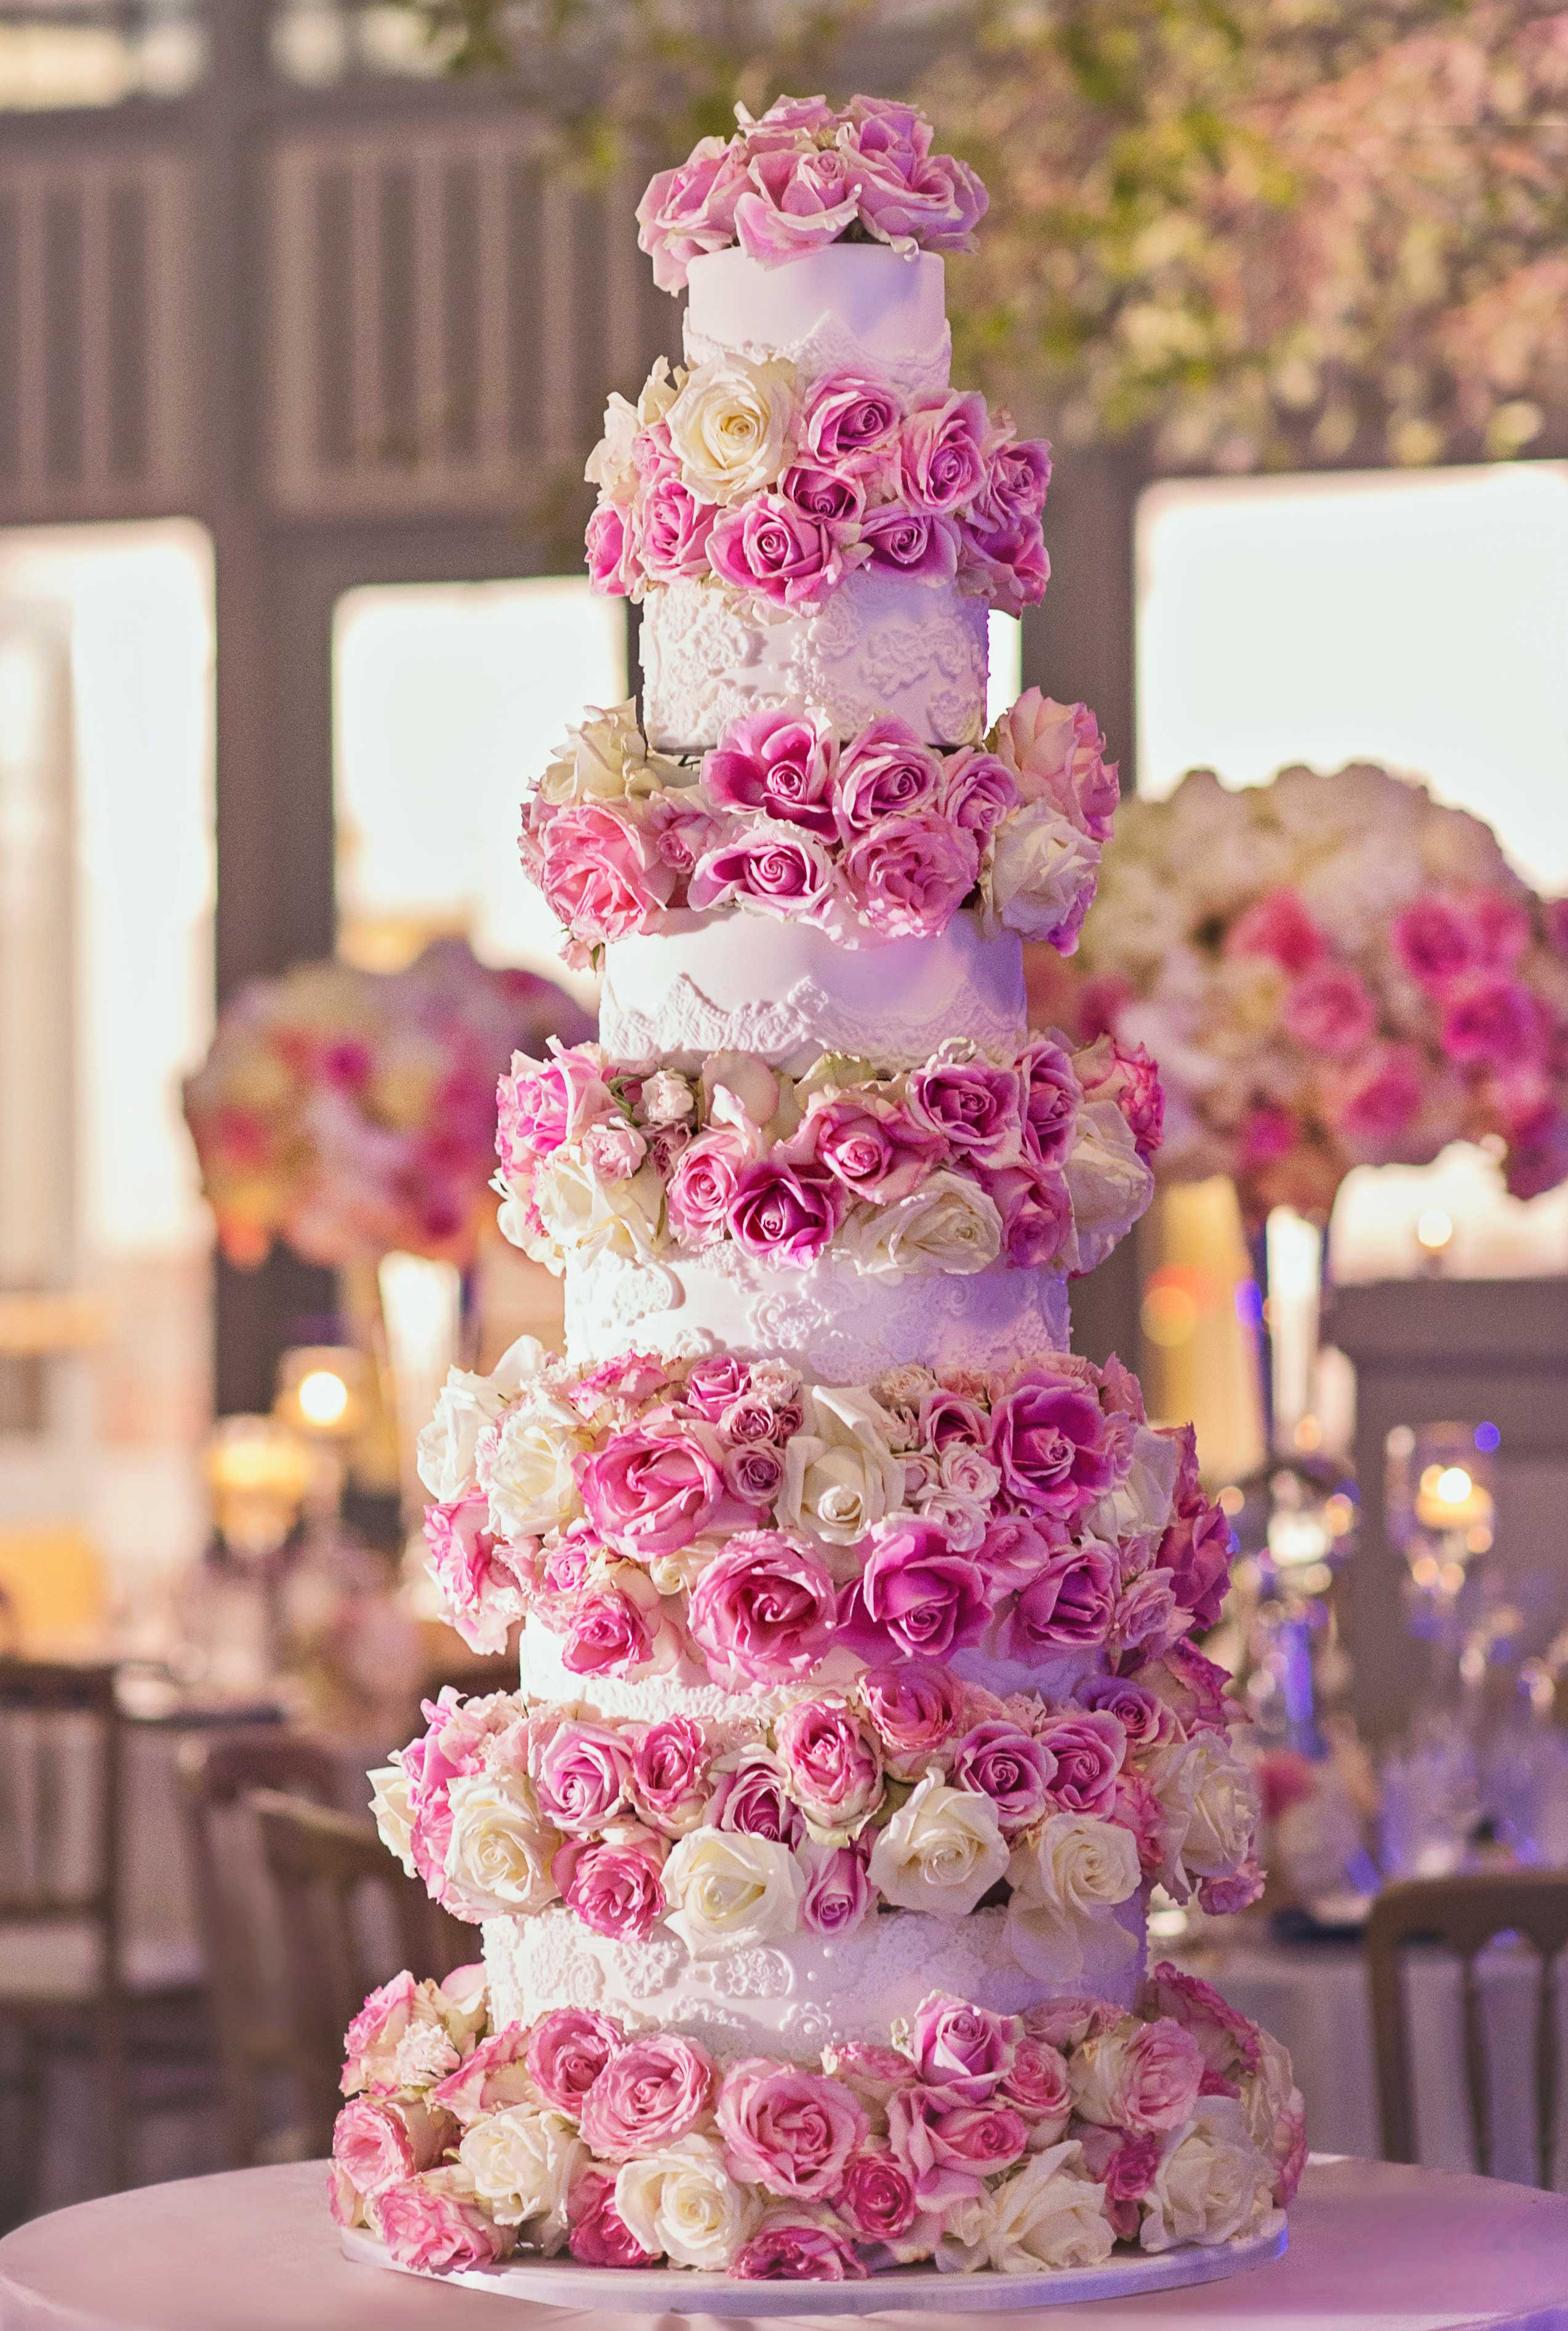 Wedding Cake Ideas: Unique & Beautiful Cakes Large and Small ...